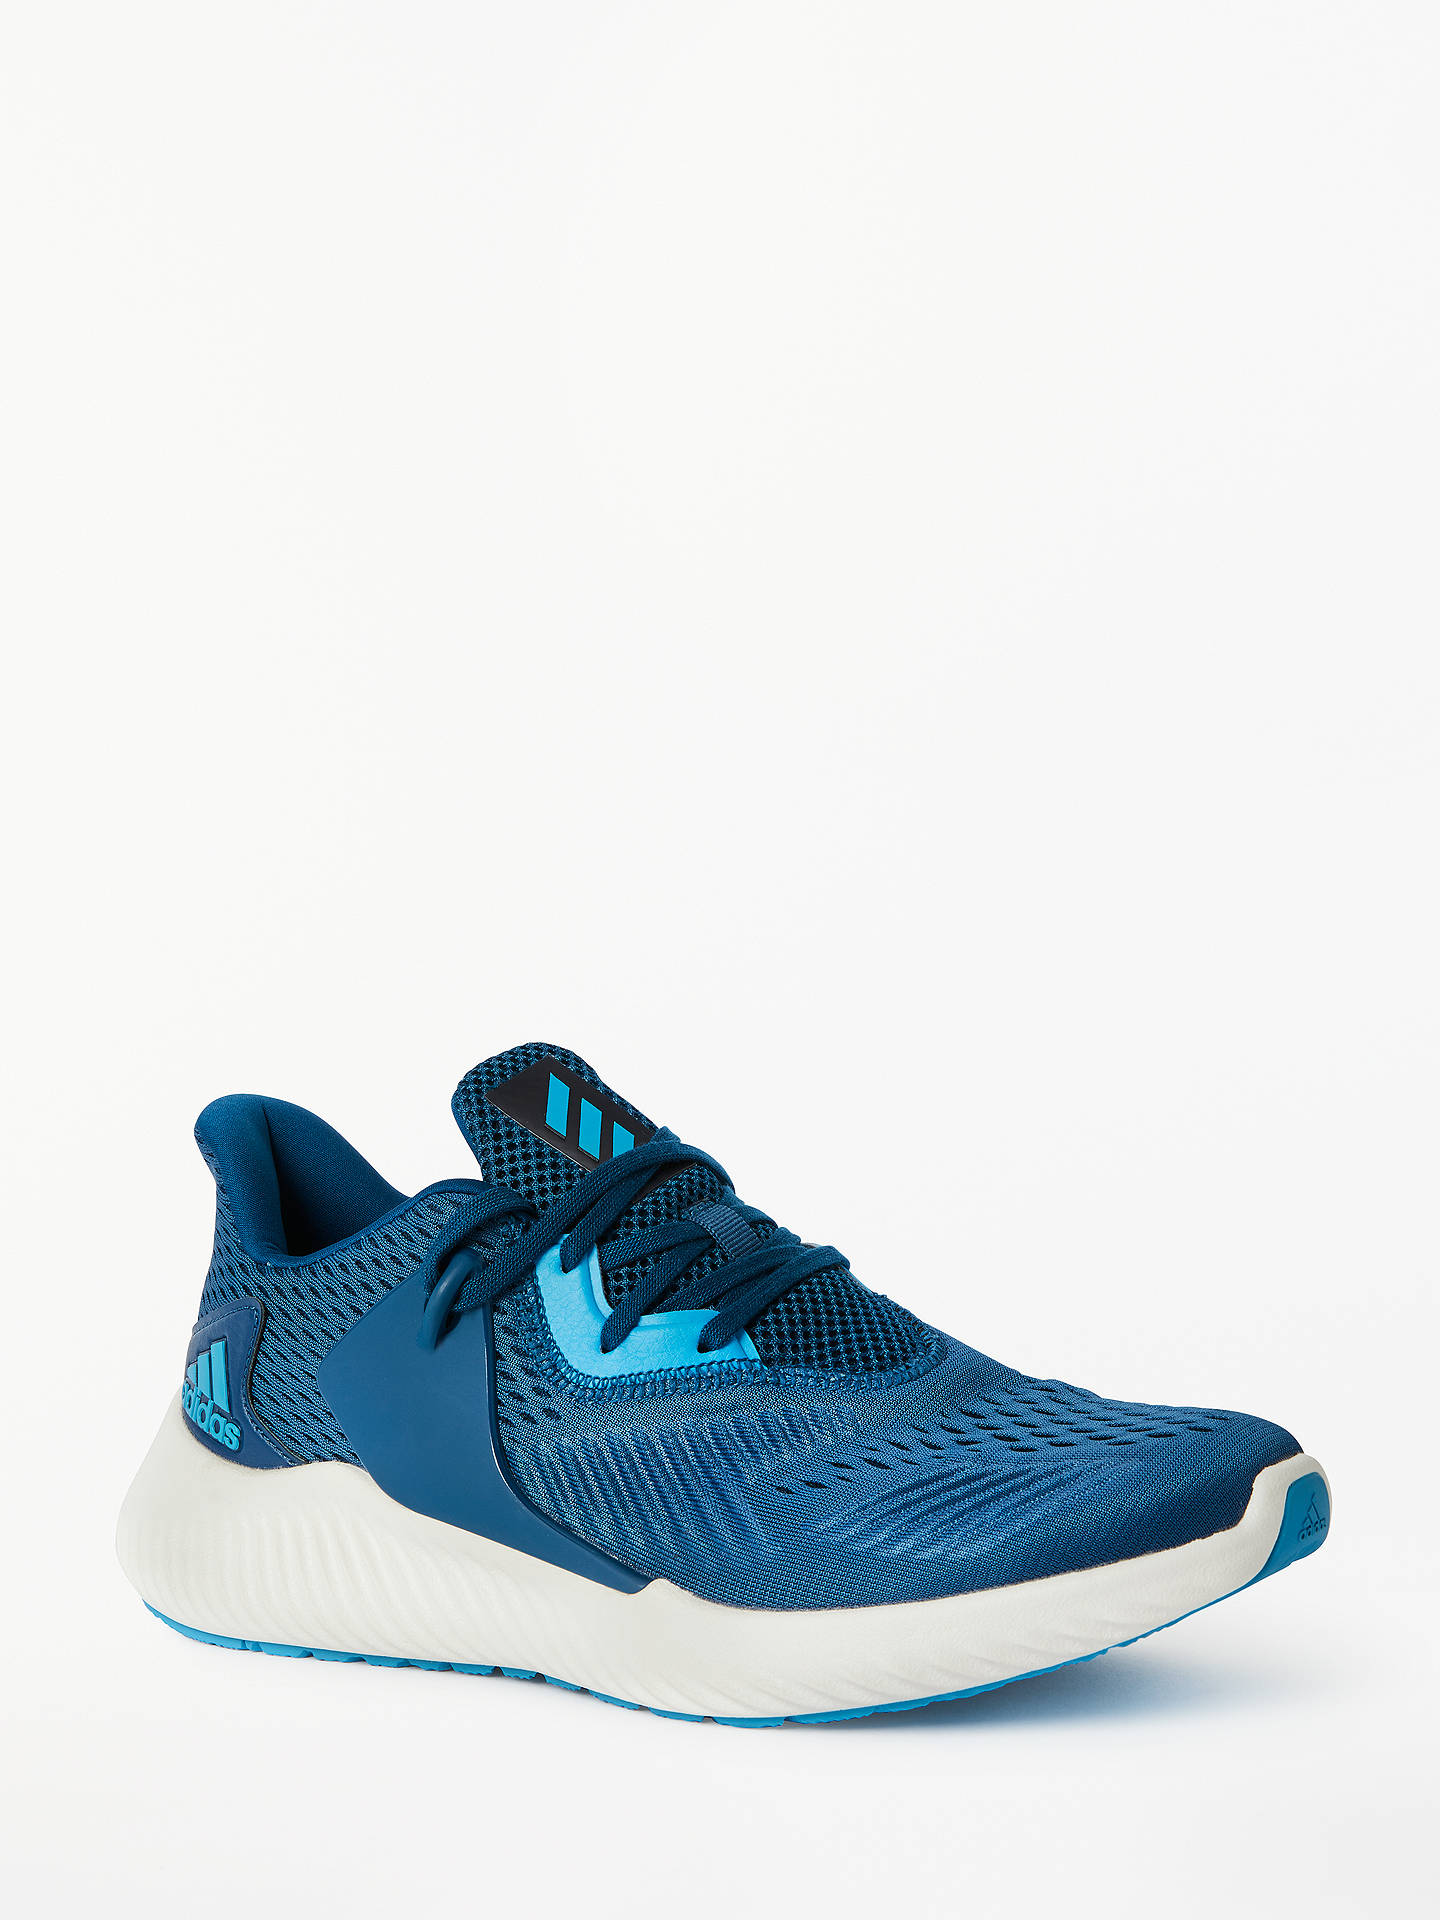 100% authentic a0420 a44df ... Buy adidas Alphabounce RC 2.0 Men s Running Shoes, Legend Marine Shock  Cyan Cloud ...